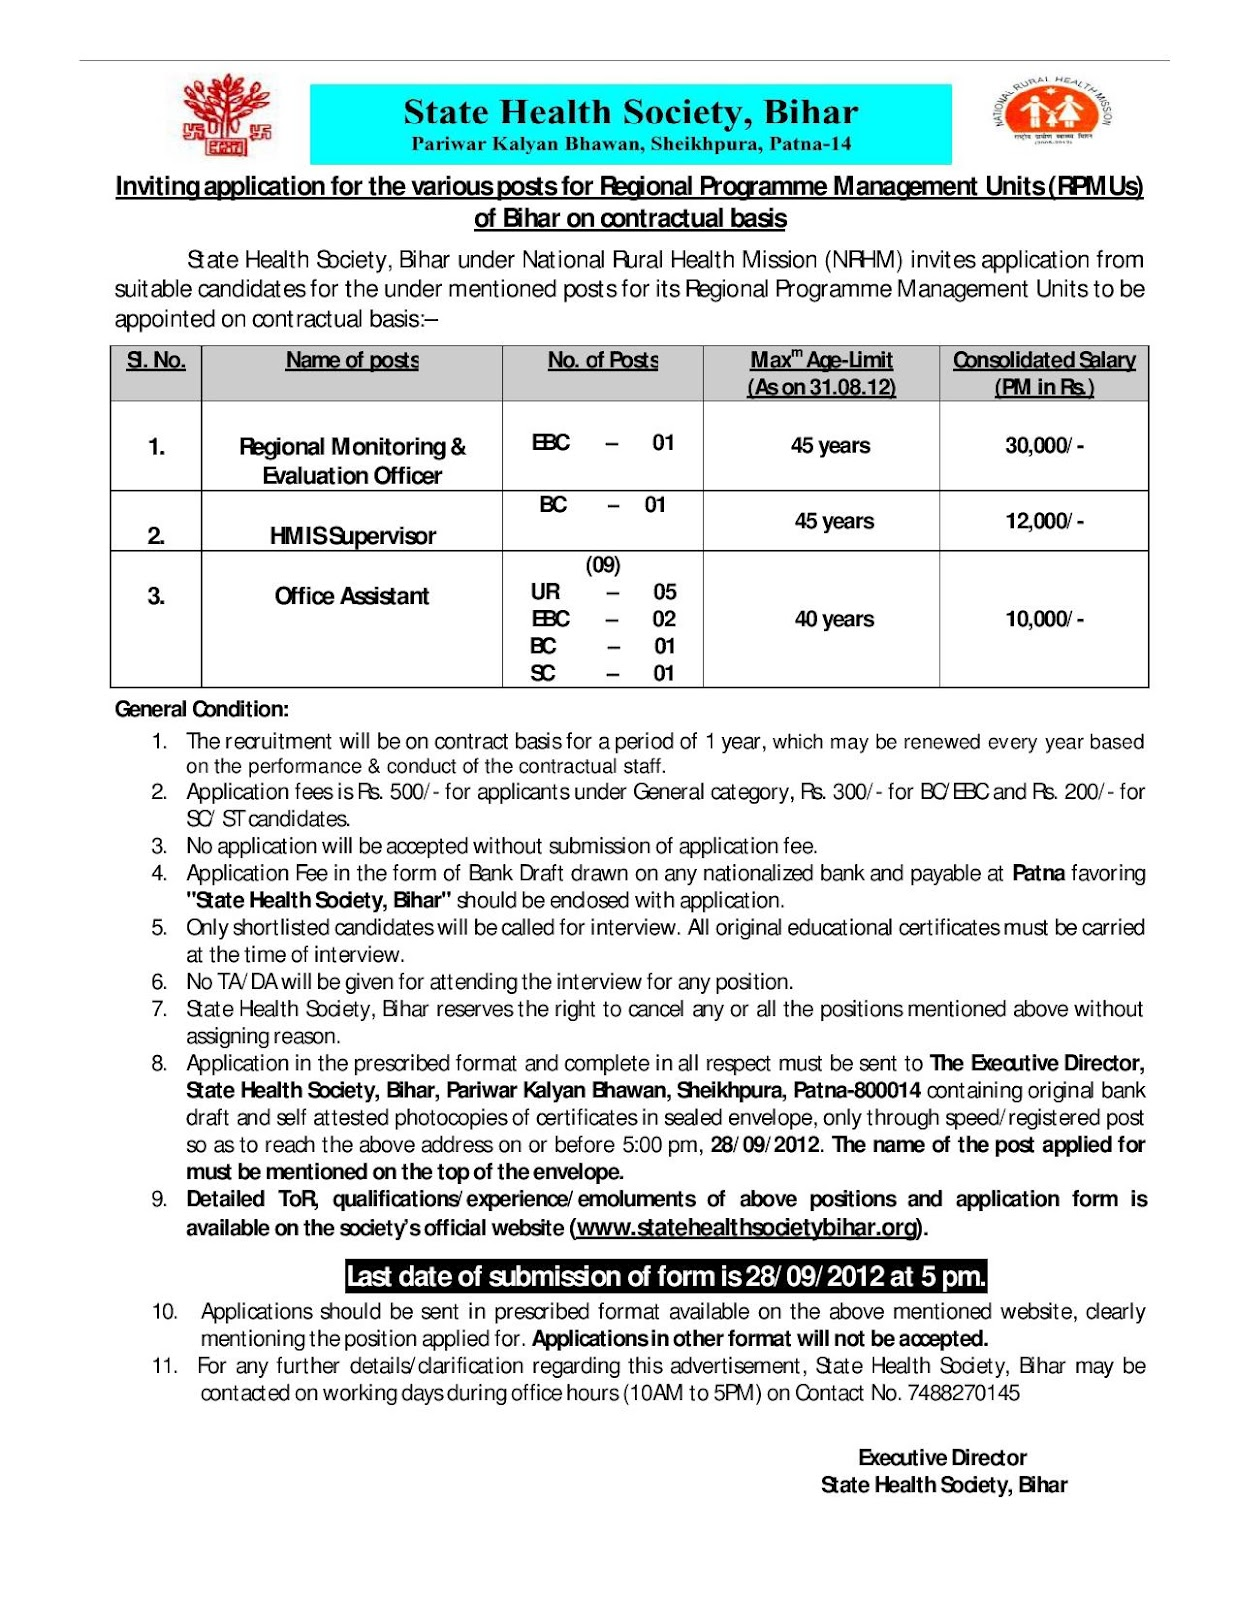 Inviting application for the various posts for regional programme management units rpmus of bihar on contractual basis at state health society bihar